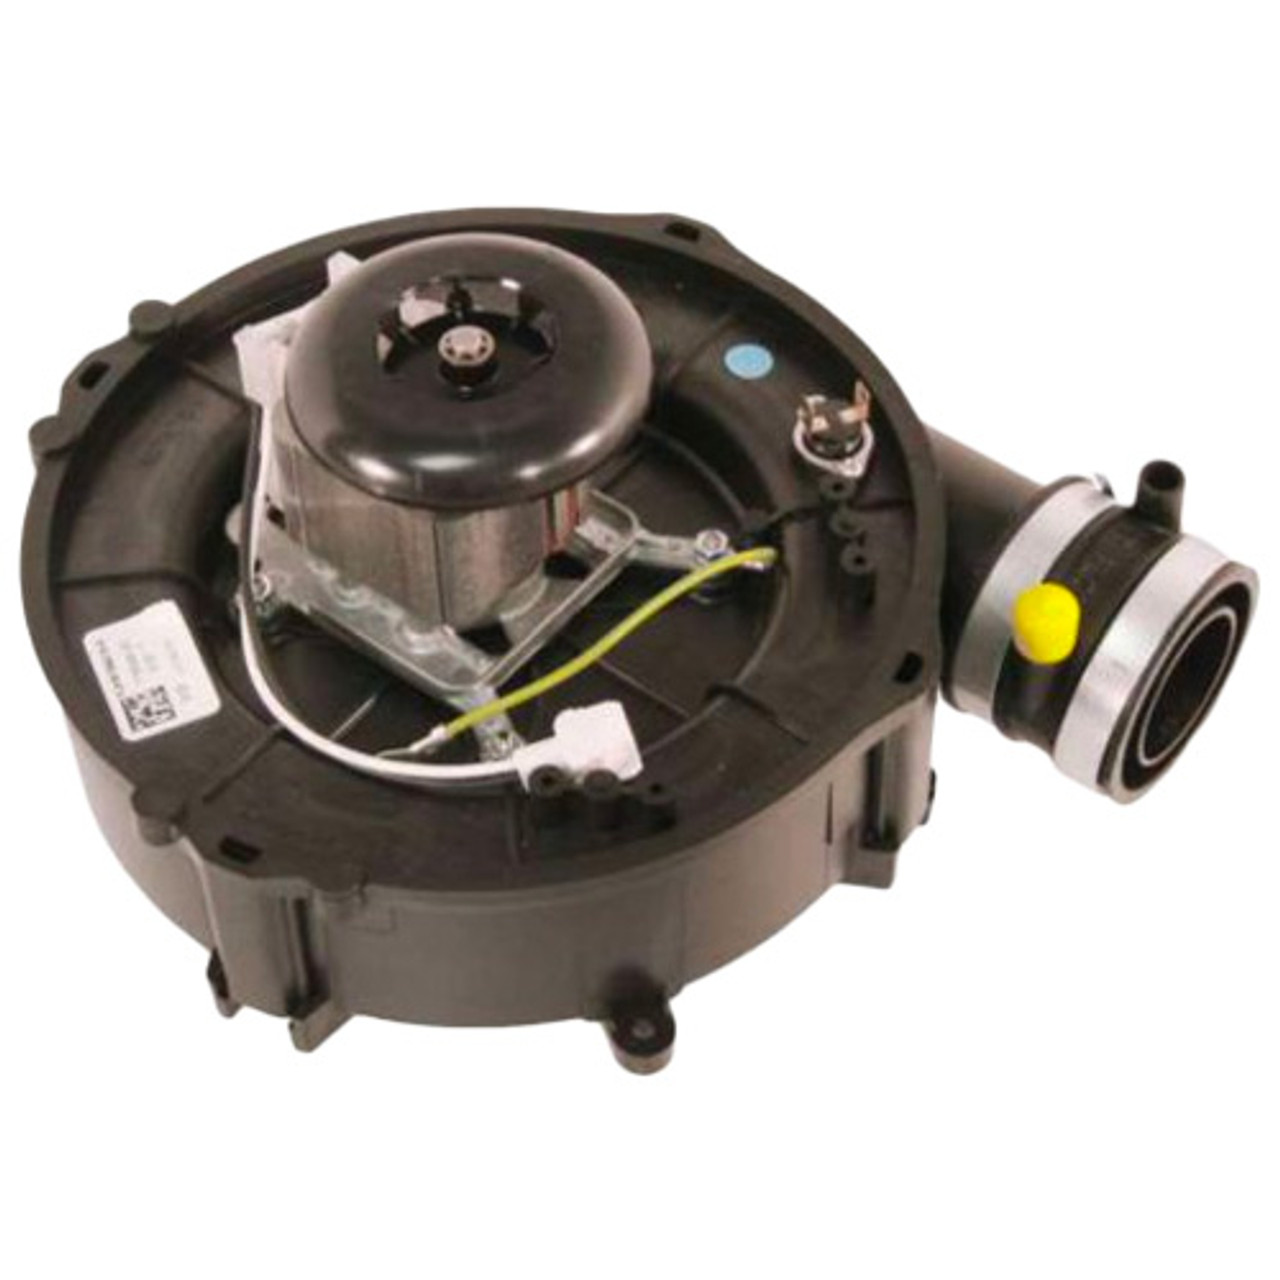 American Standard Furnace Draft Inducer Exhaust Vent Venter Motor 7021-11543 Fasco Replacement